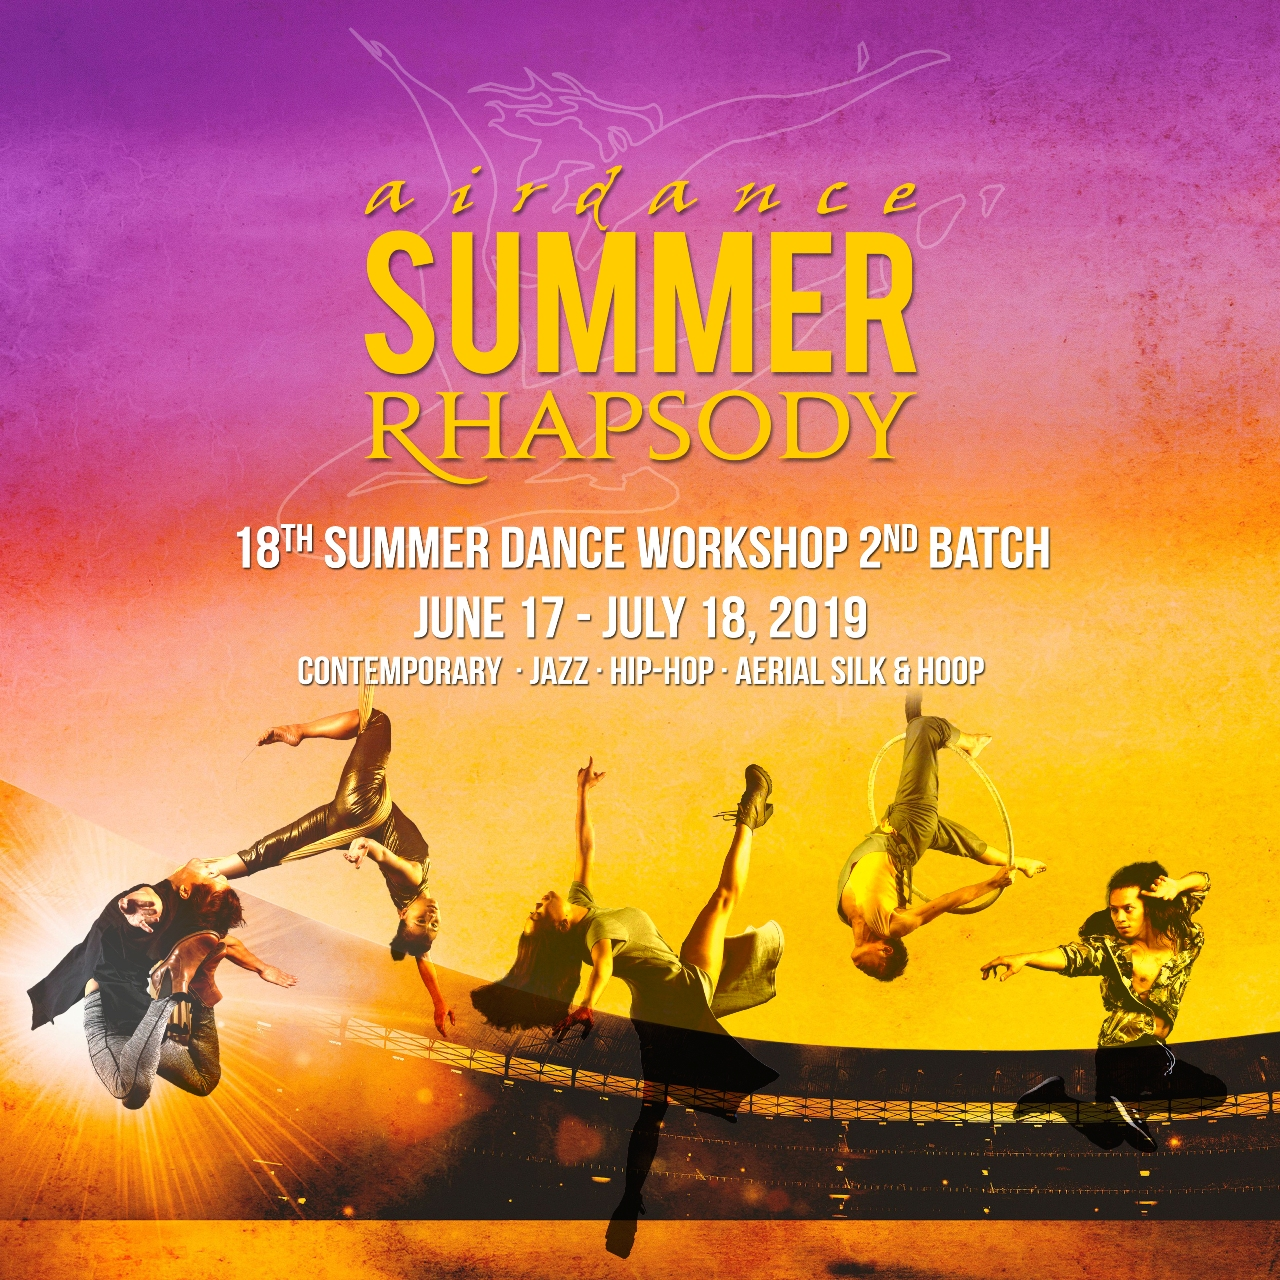 2nd Batch of Summer Rhapsody - 18th Summer Dance Workshop